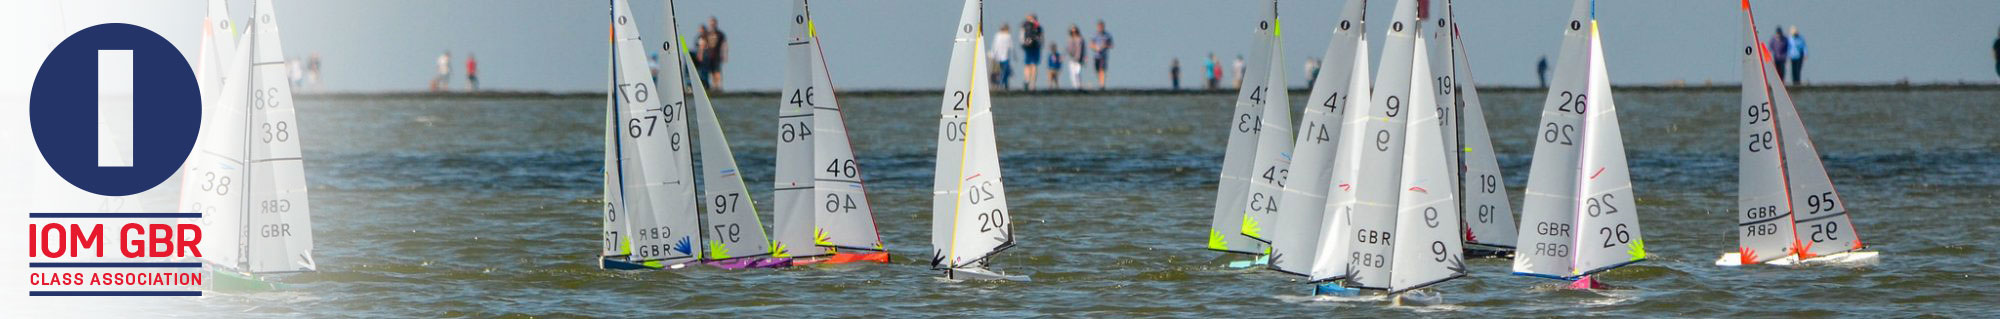 IOM GBR – International One Metre Class Great Britain